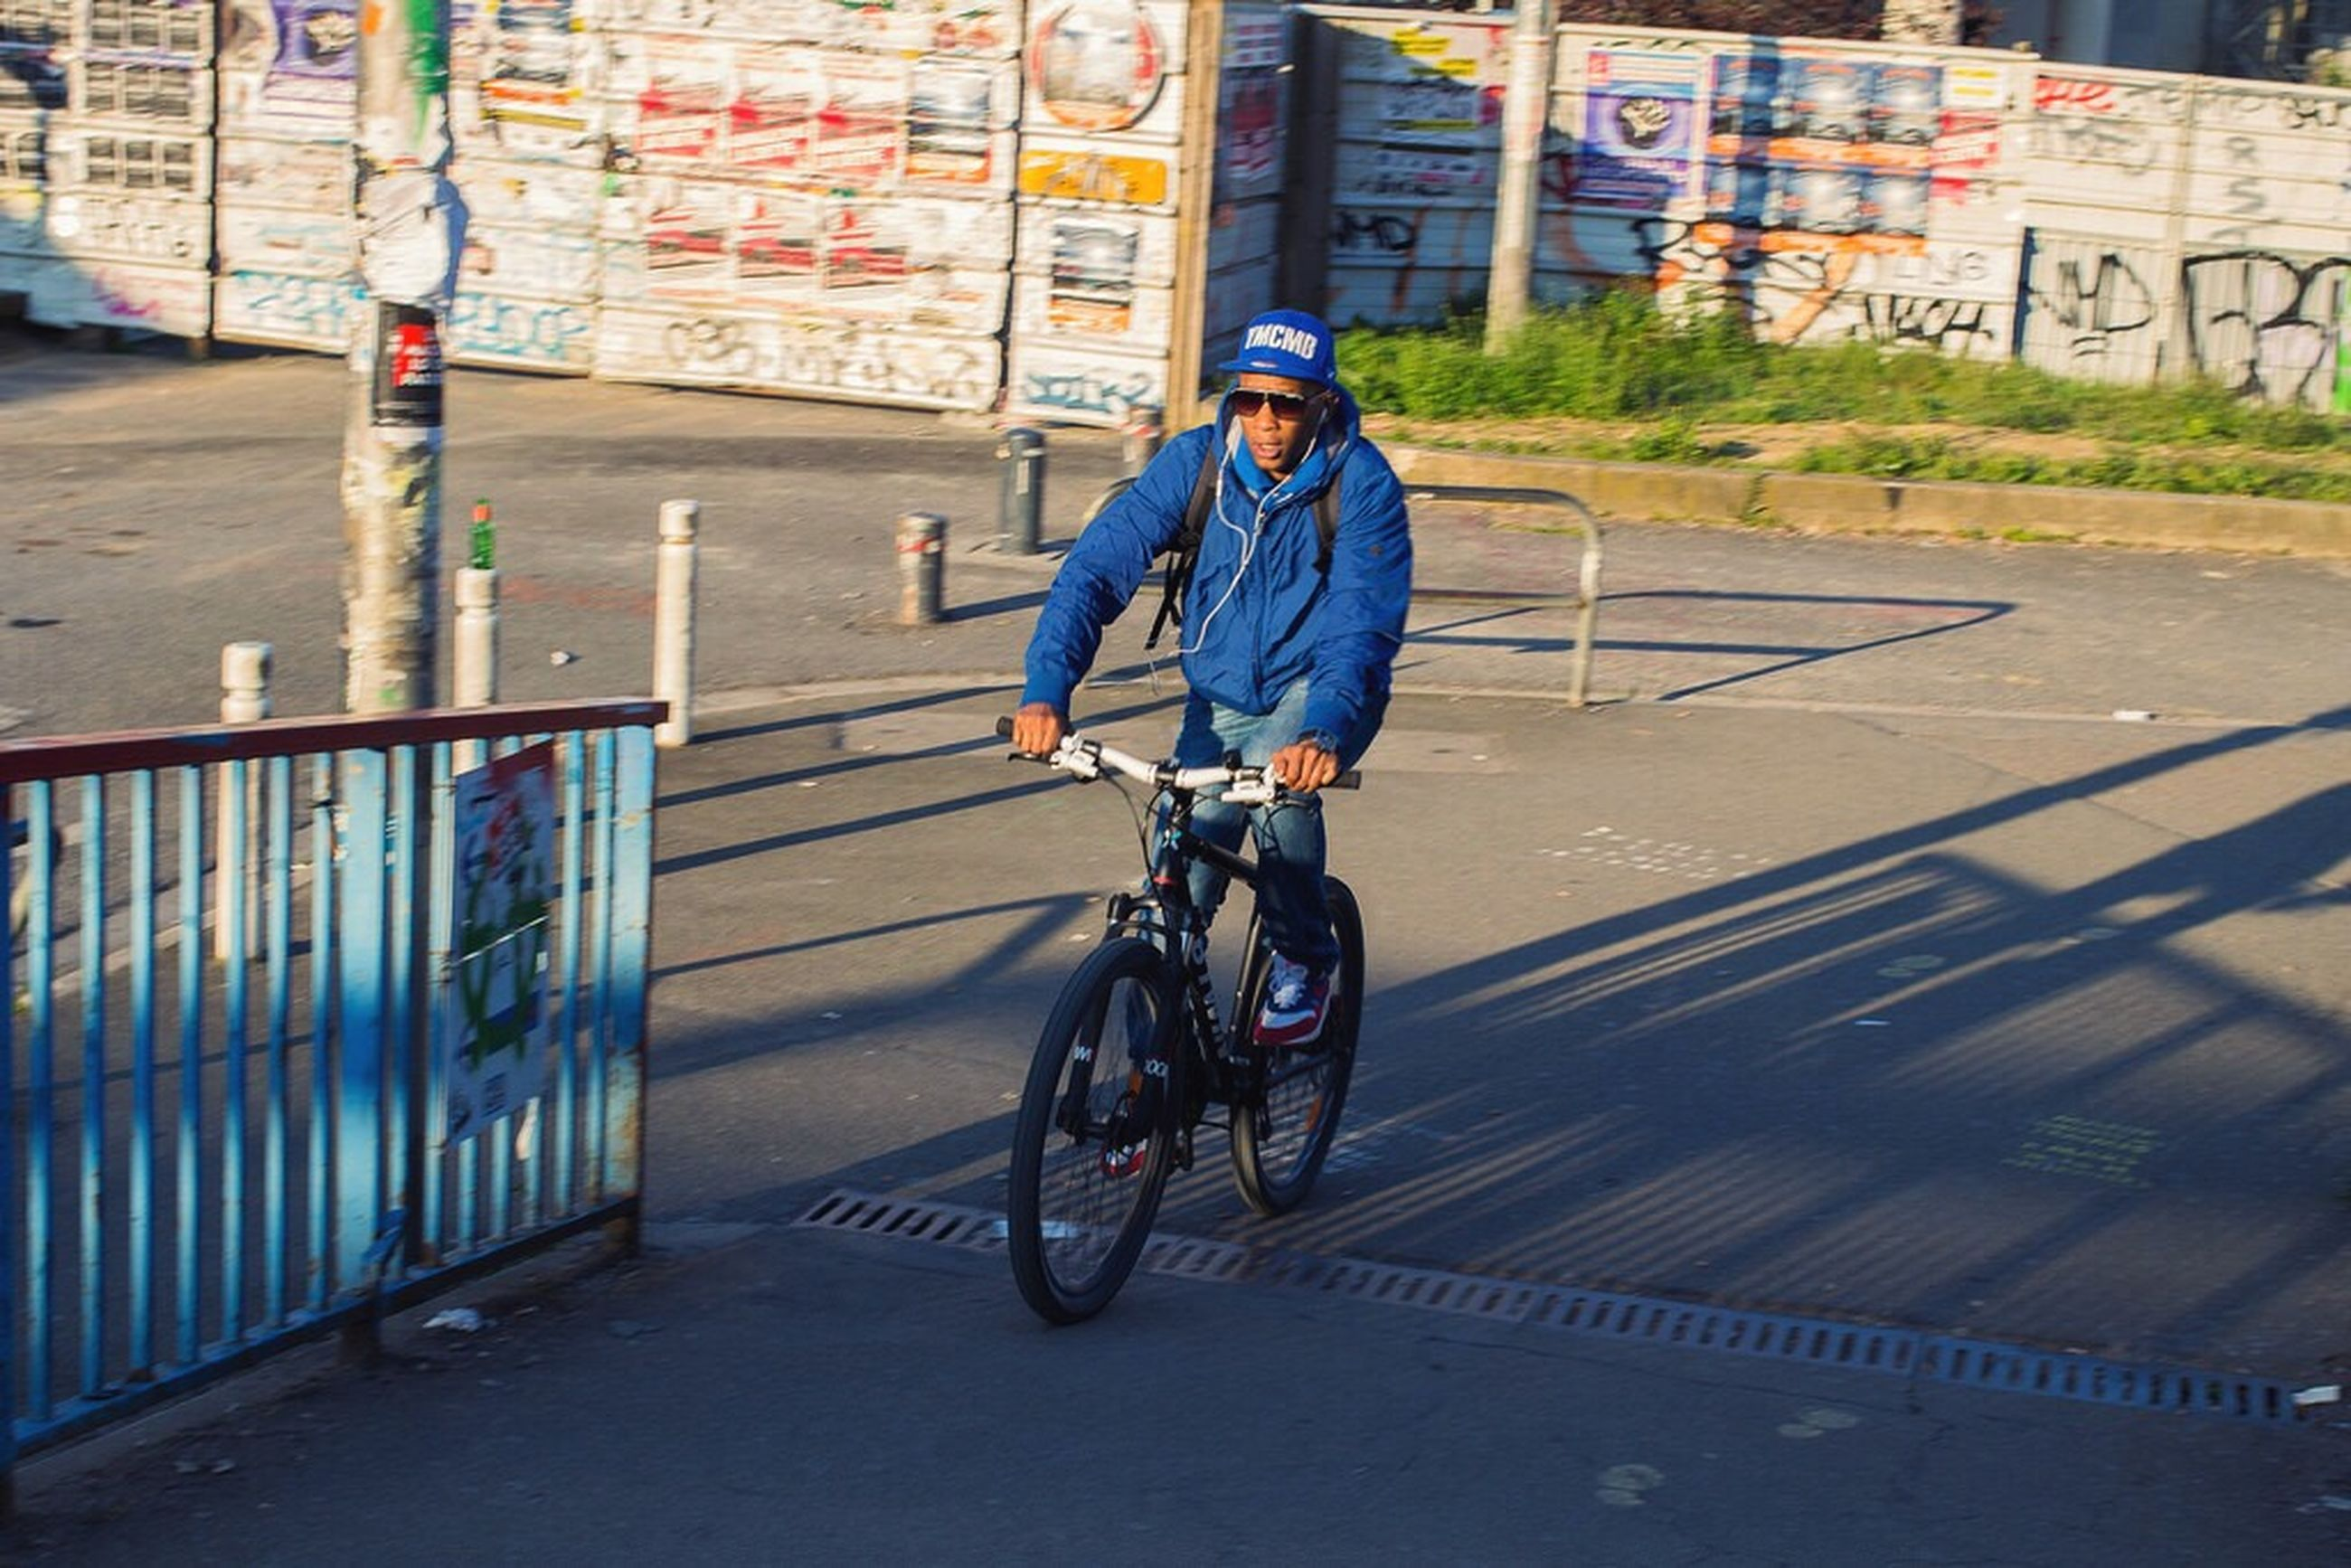 full length, transportation, lifestyles, mode of transport, bicycle, casual clothing, land vehicle, street, riding, leisure activity, road, on the move, building exterior, men, boys, city, walking, childhood